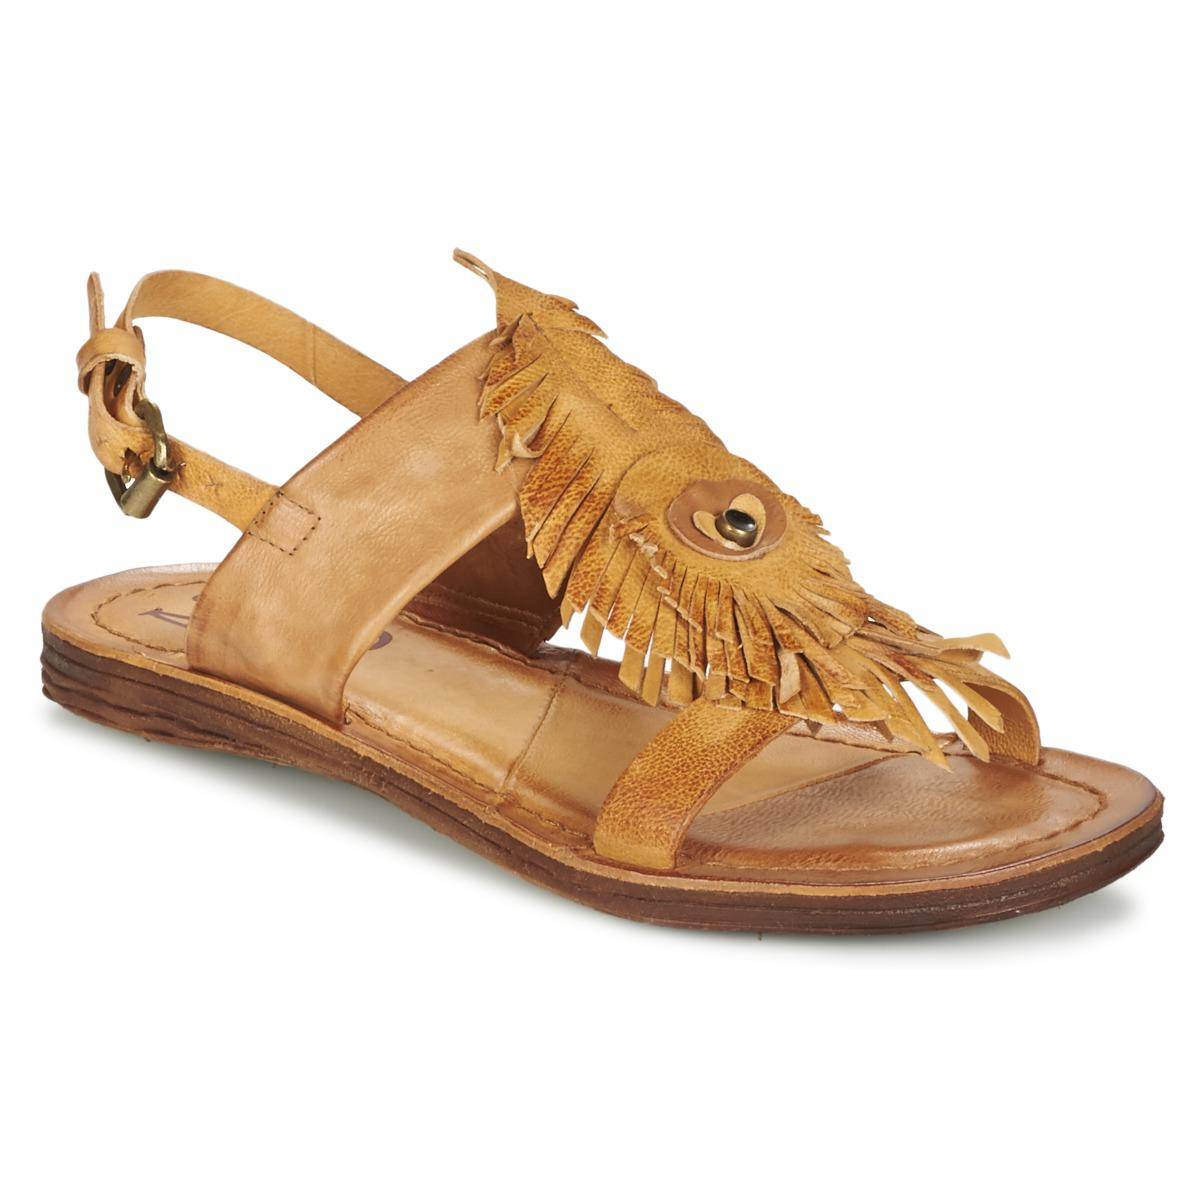 A.S.98 Women's Tunnel Ankle Strap Sandals Clearance Authentic Cheap Lowest Price Cheap Great Deals 6KMPRdzy